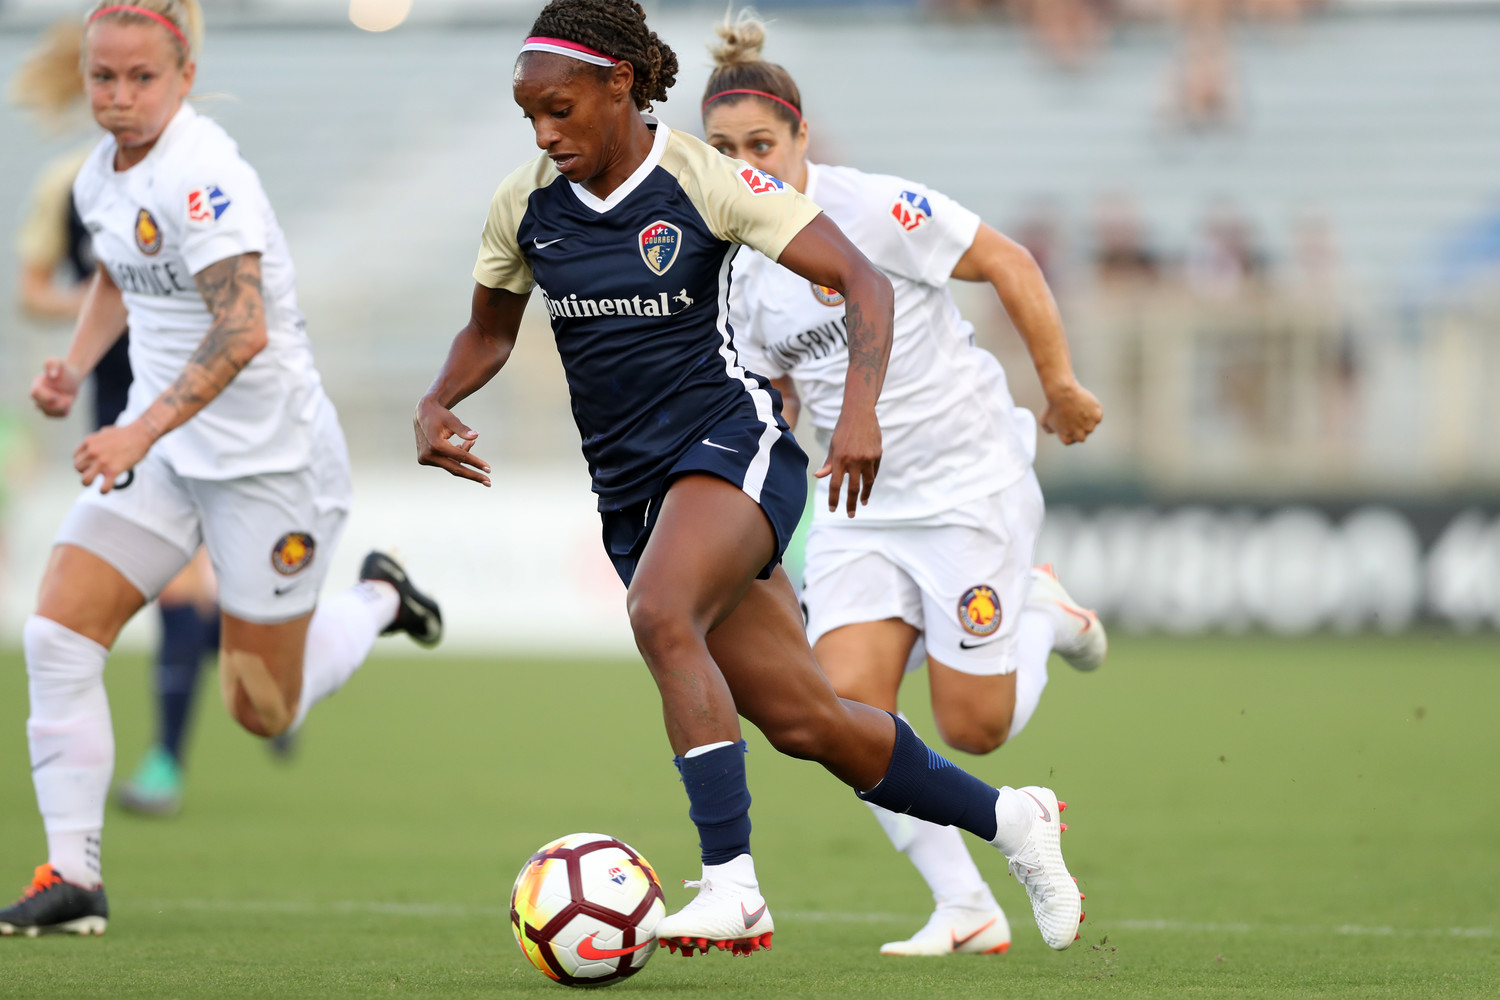 Crystal Dunn leads the North Carolina Courage — who sit atop the National Women's Soccer League standings — with six goals this season.